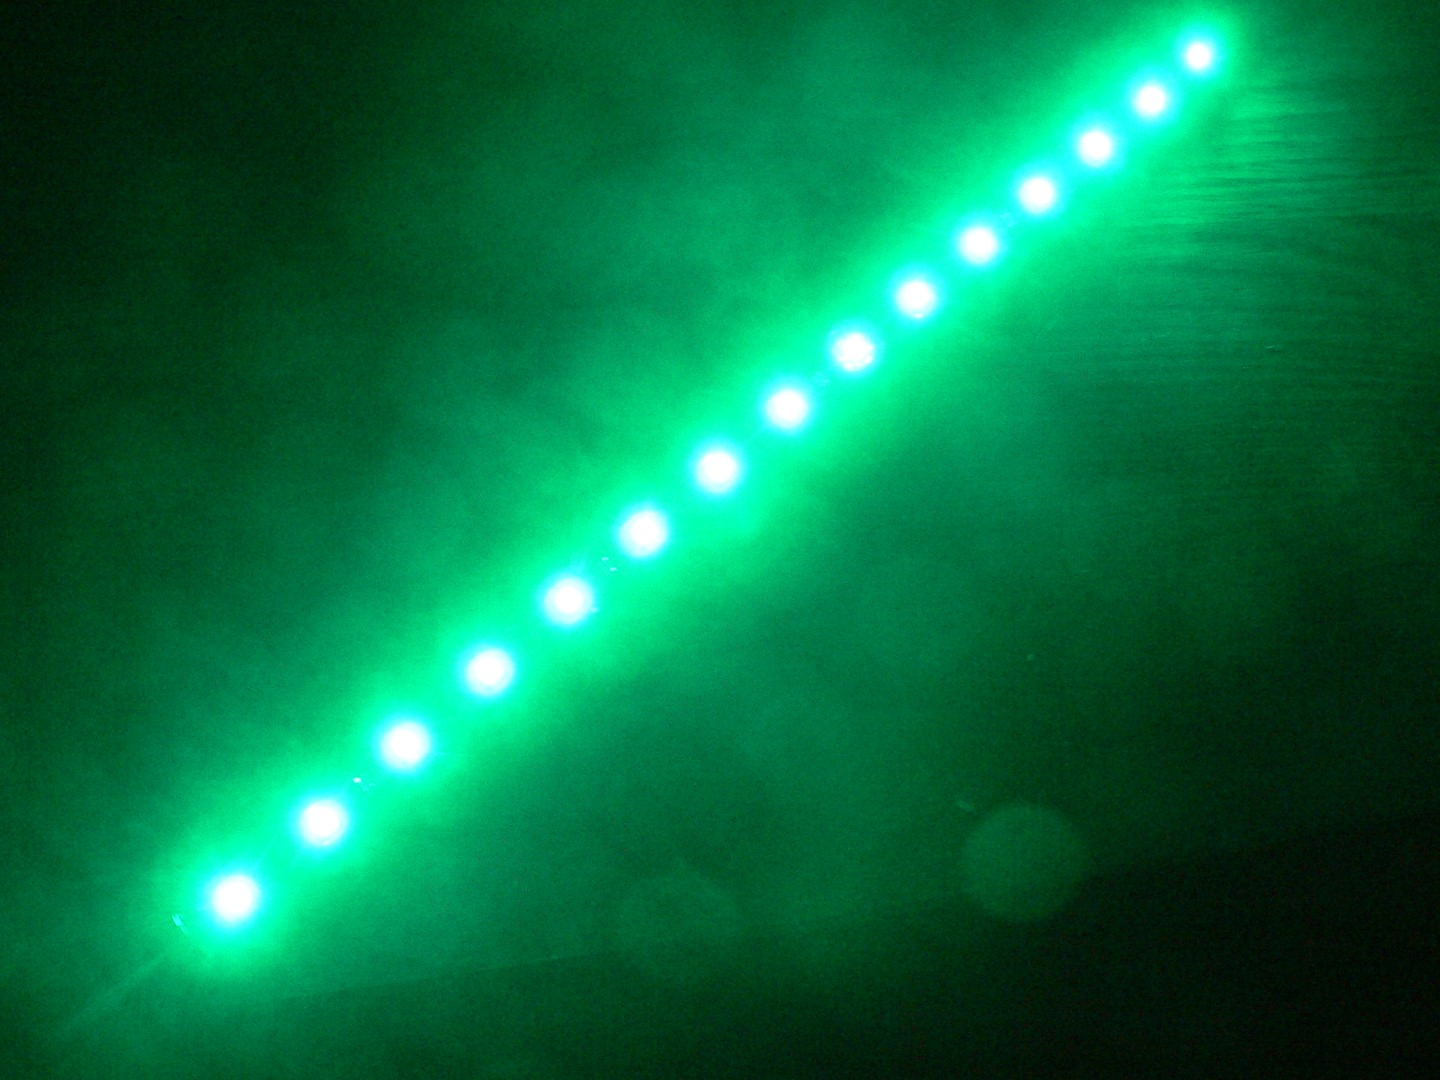 Green 15 LED Strip Adhesive Backed 1 Foot (30cm) Long